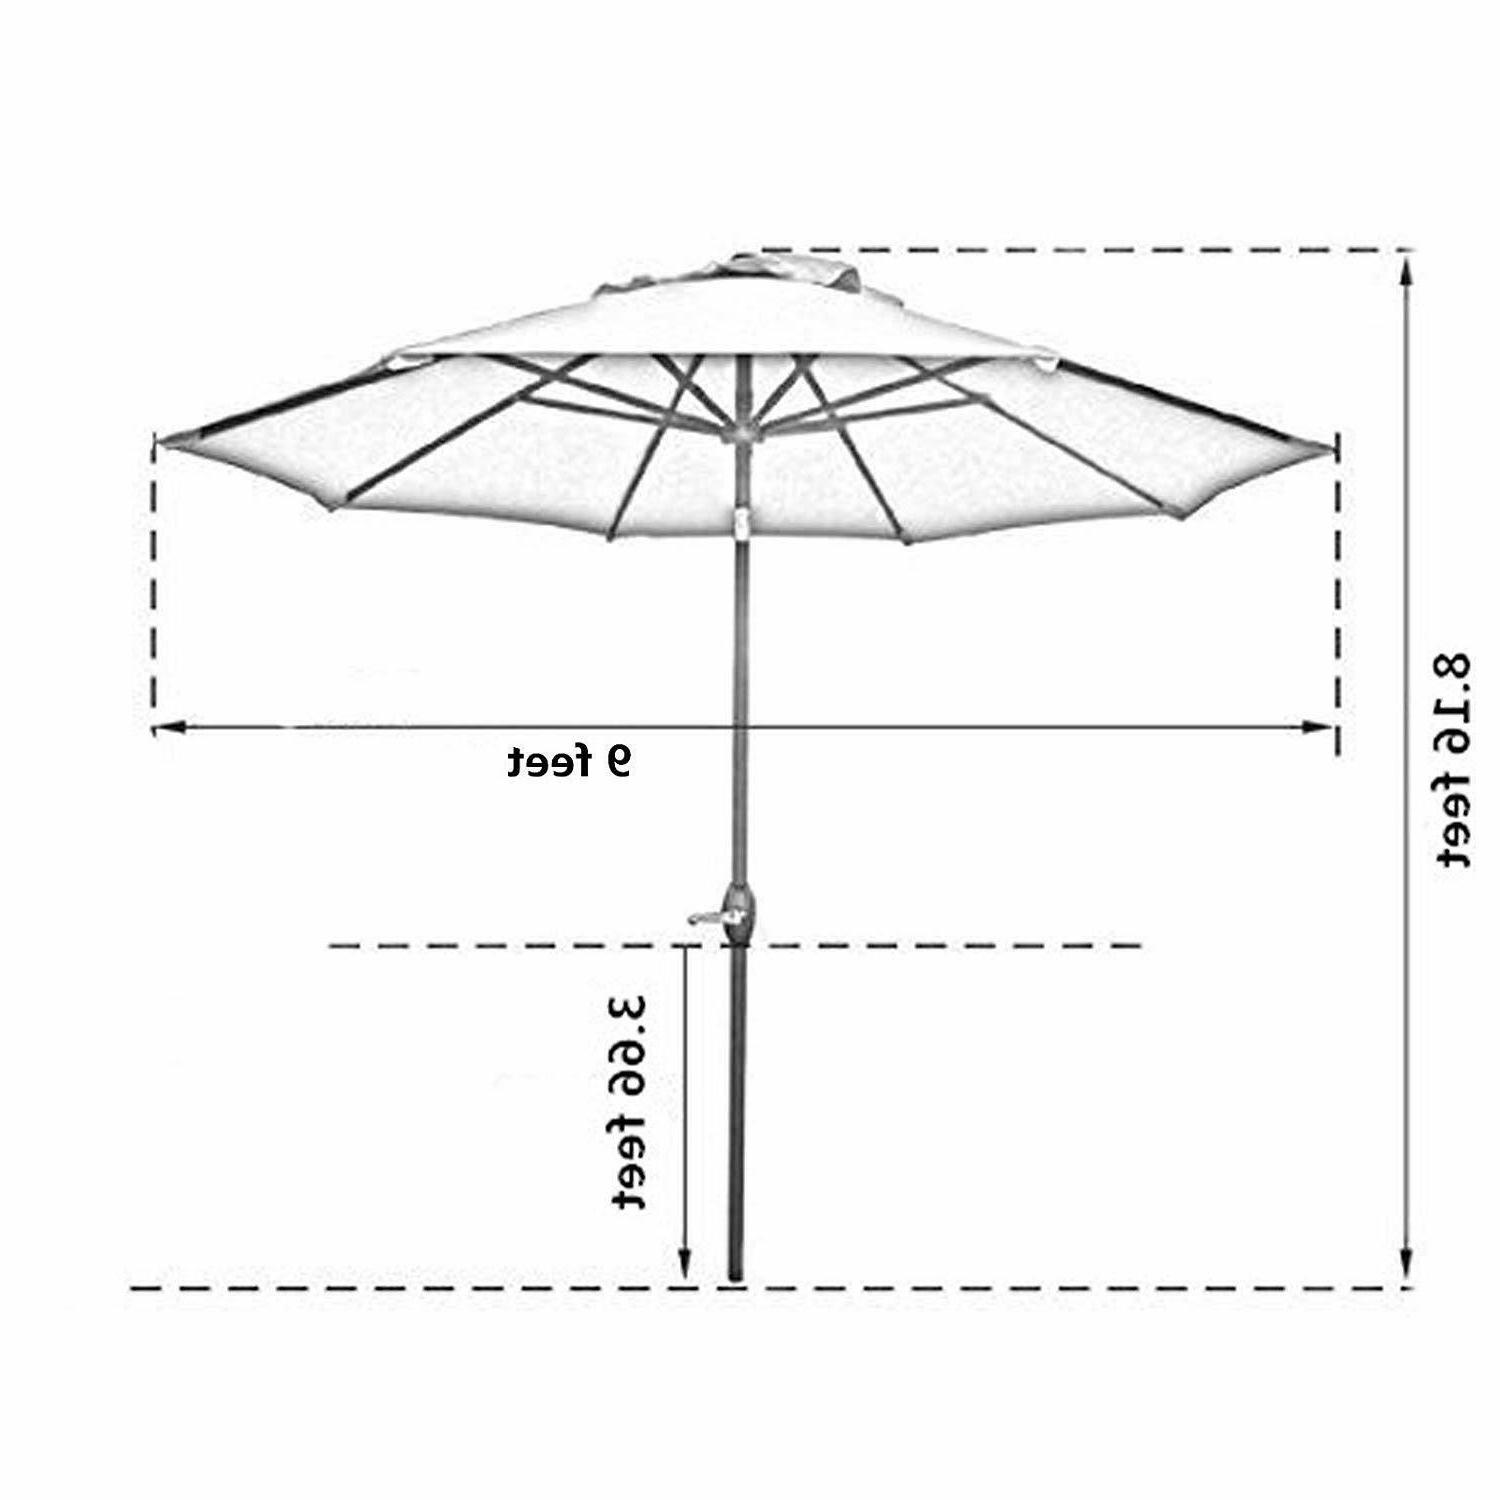 Sunnyglade 8 Ribs Outdoor Umbrella